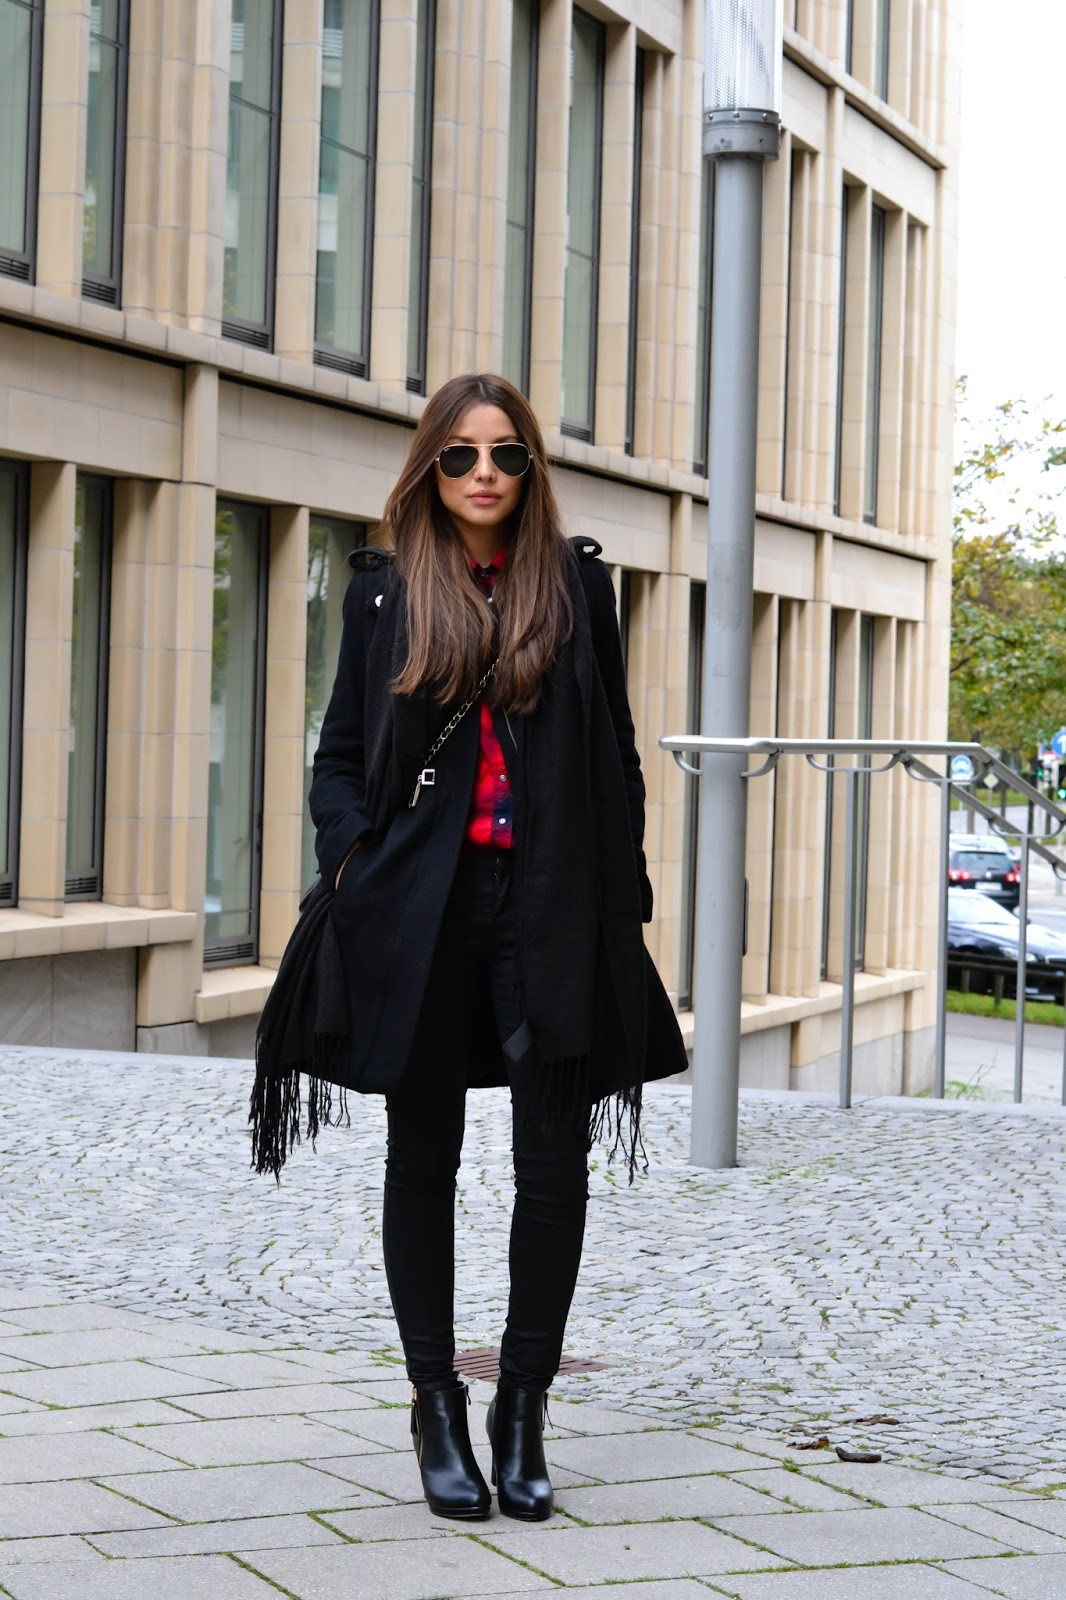 Consuelo Paloma is wearing a a black coat and trousers from Mango, scarf from H&M, shoes from Schueh Tempel, bag from ASOS and the sunglasses are from RayBan